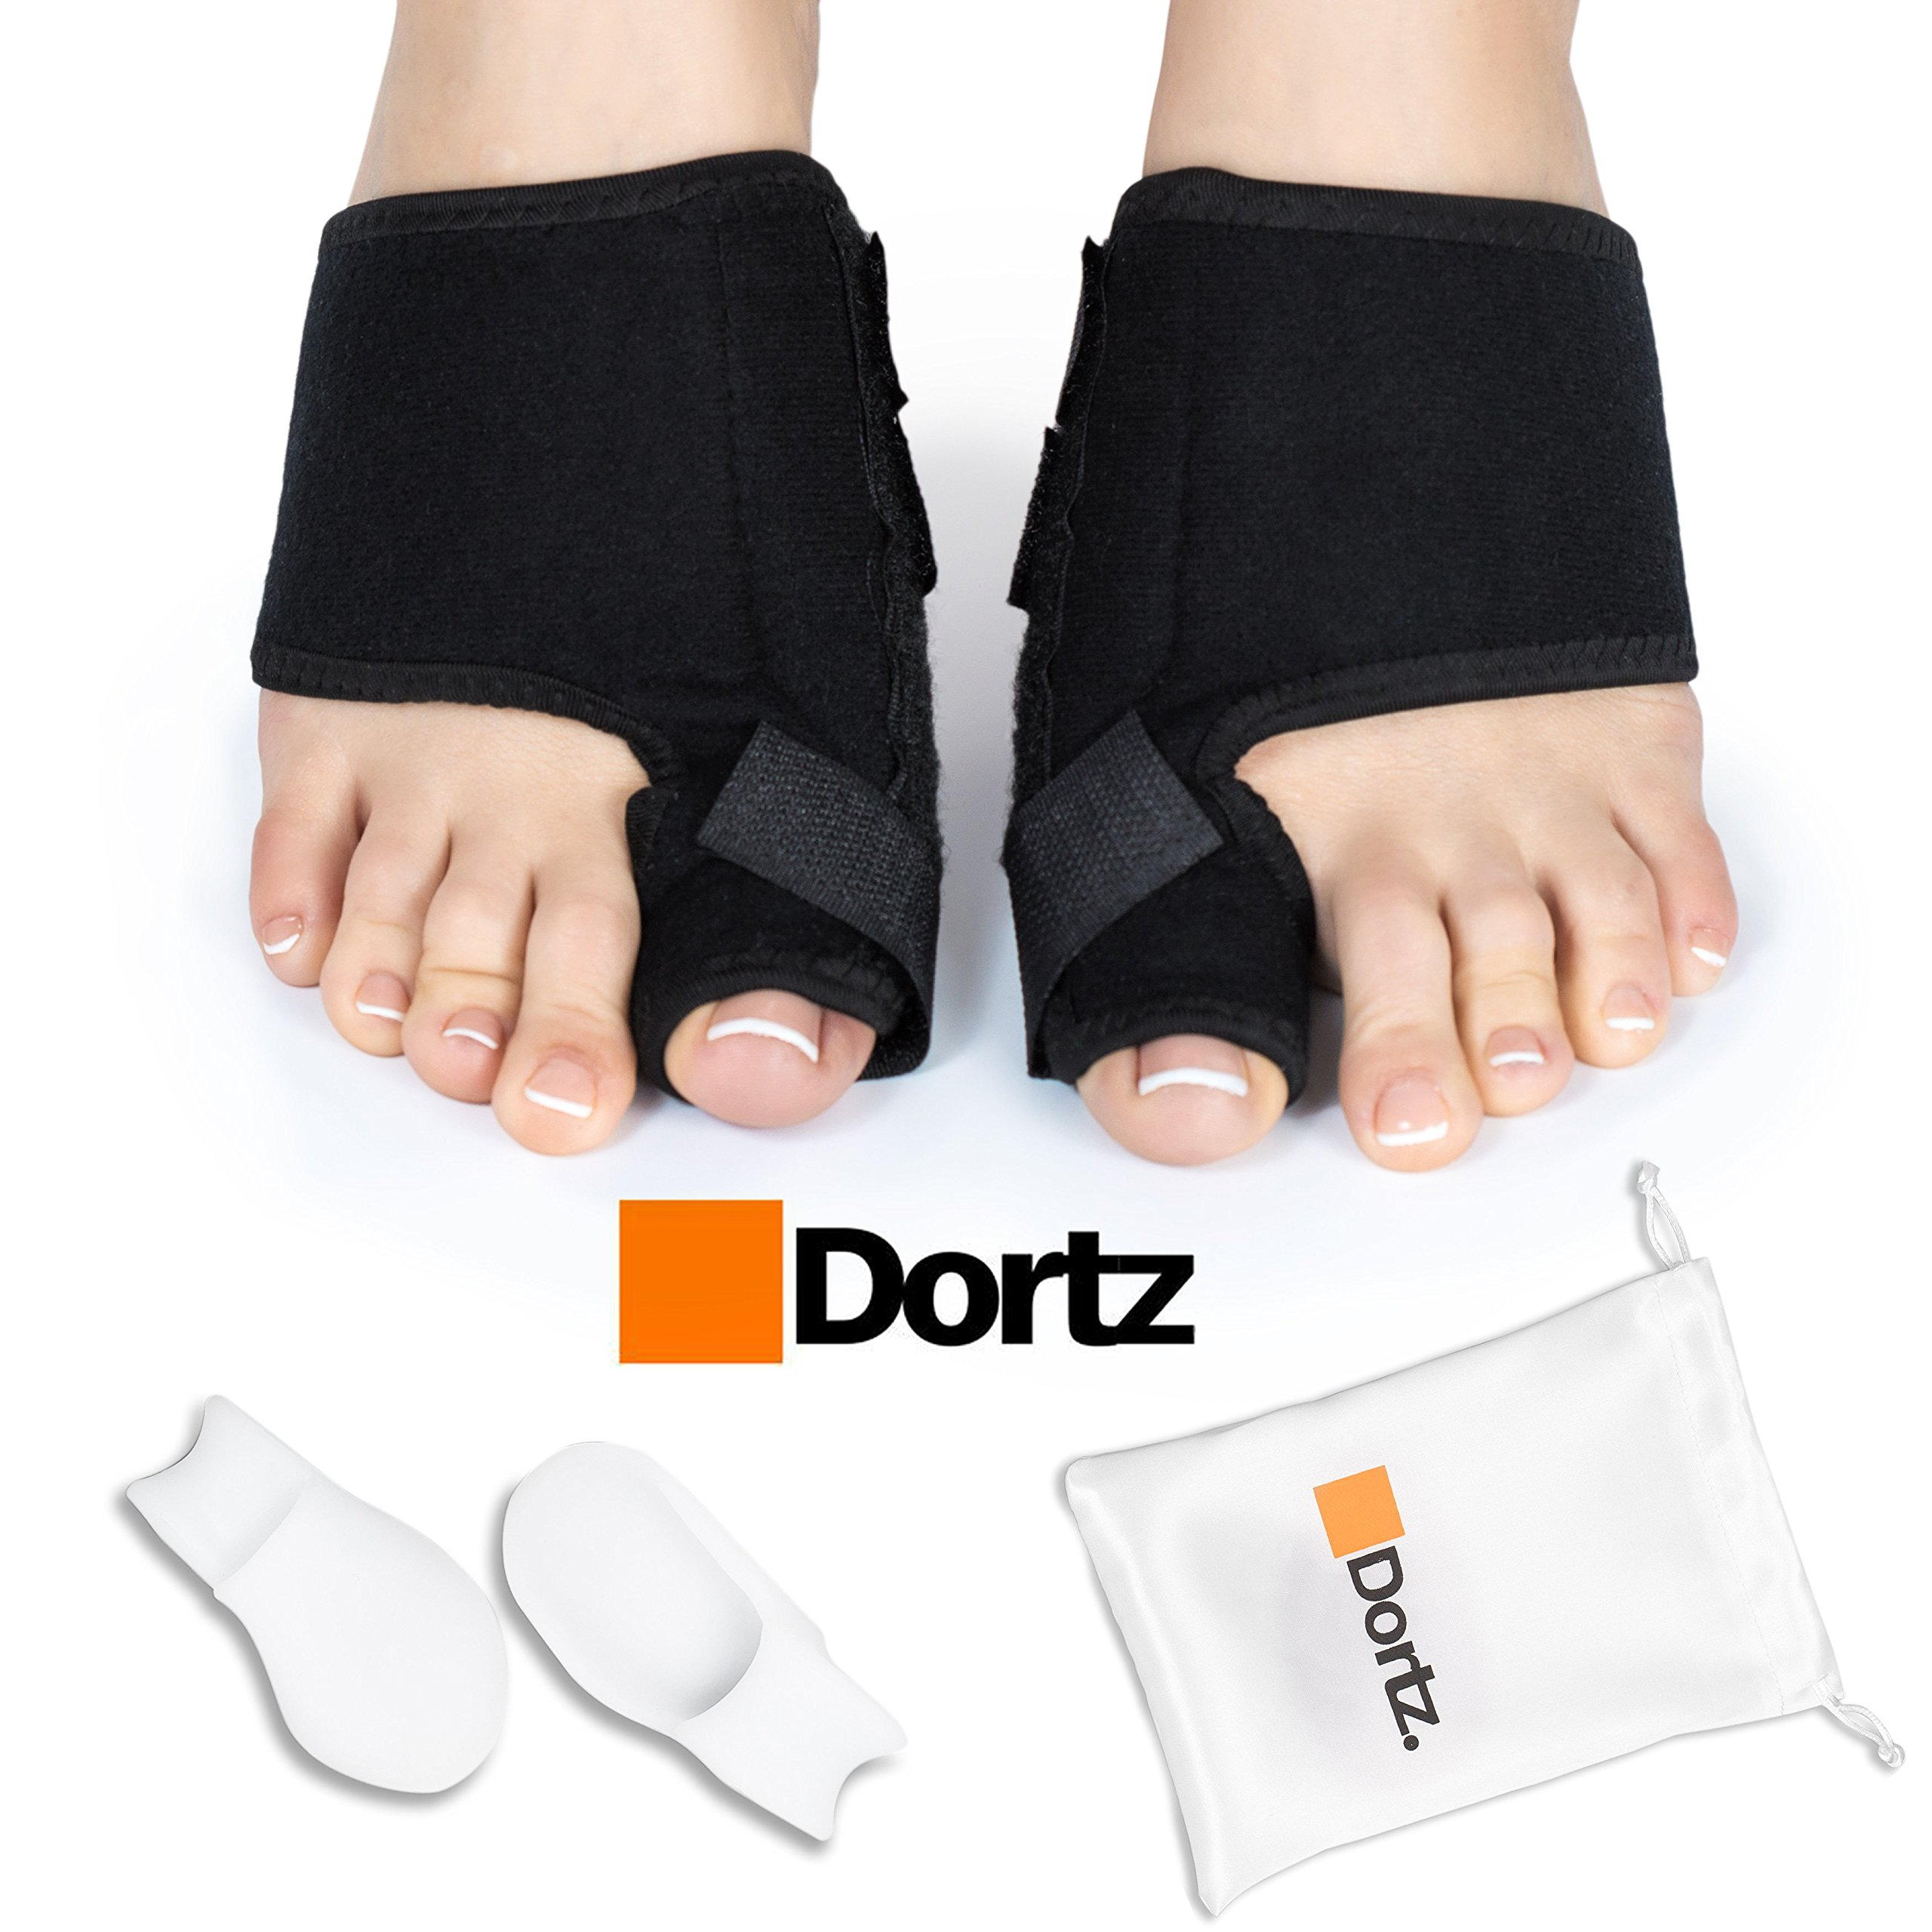 Dortz Orthopedic Bunion Corrector - Bunion Splint for Bunion Relief - Bunion Protector - Bunion Pads Bunion Bootie - Bunion Corrector for Women and Men